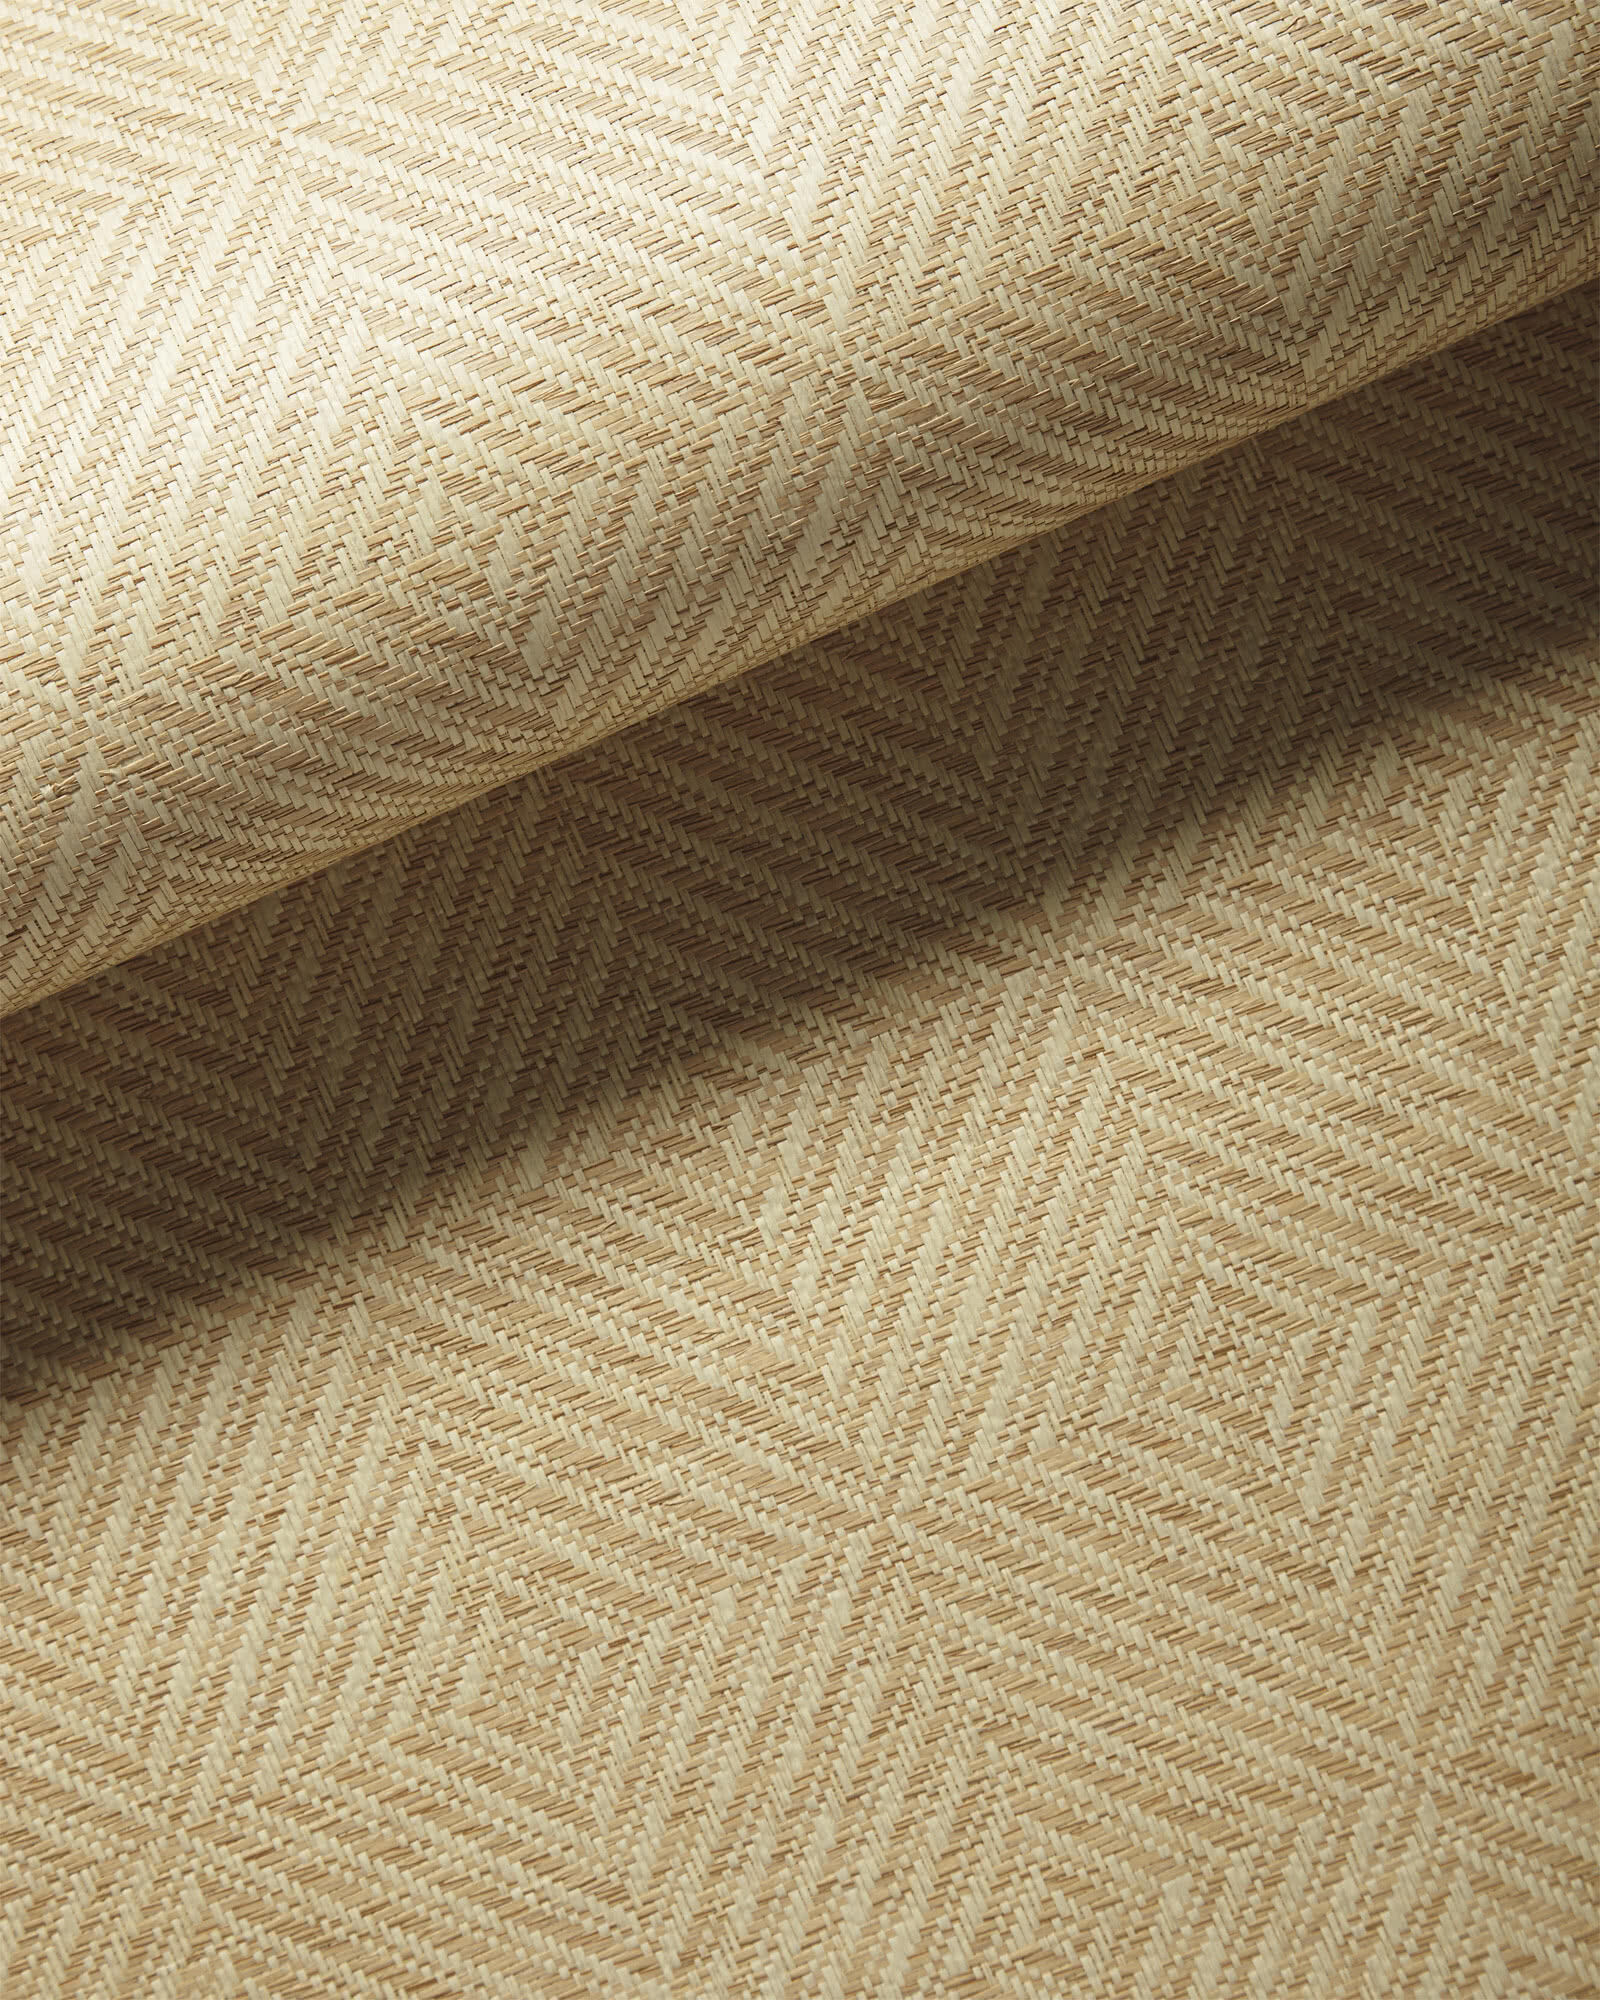 Cardiff Paperweave Wallcovering, Natural